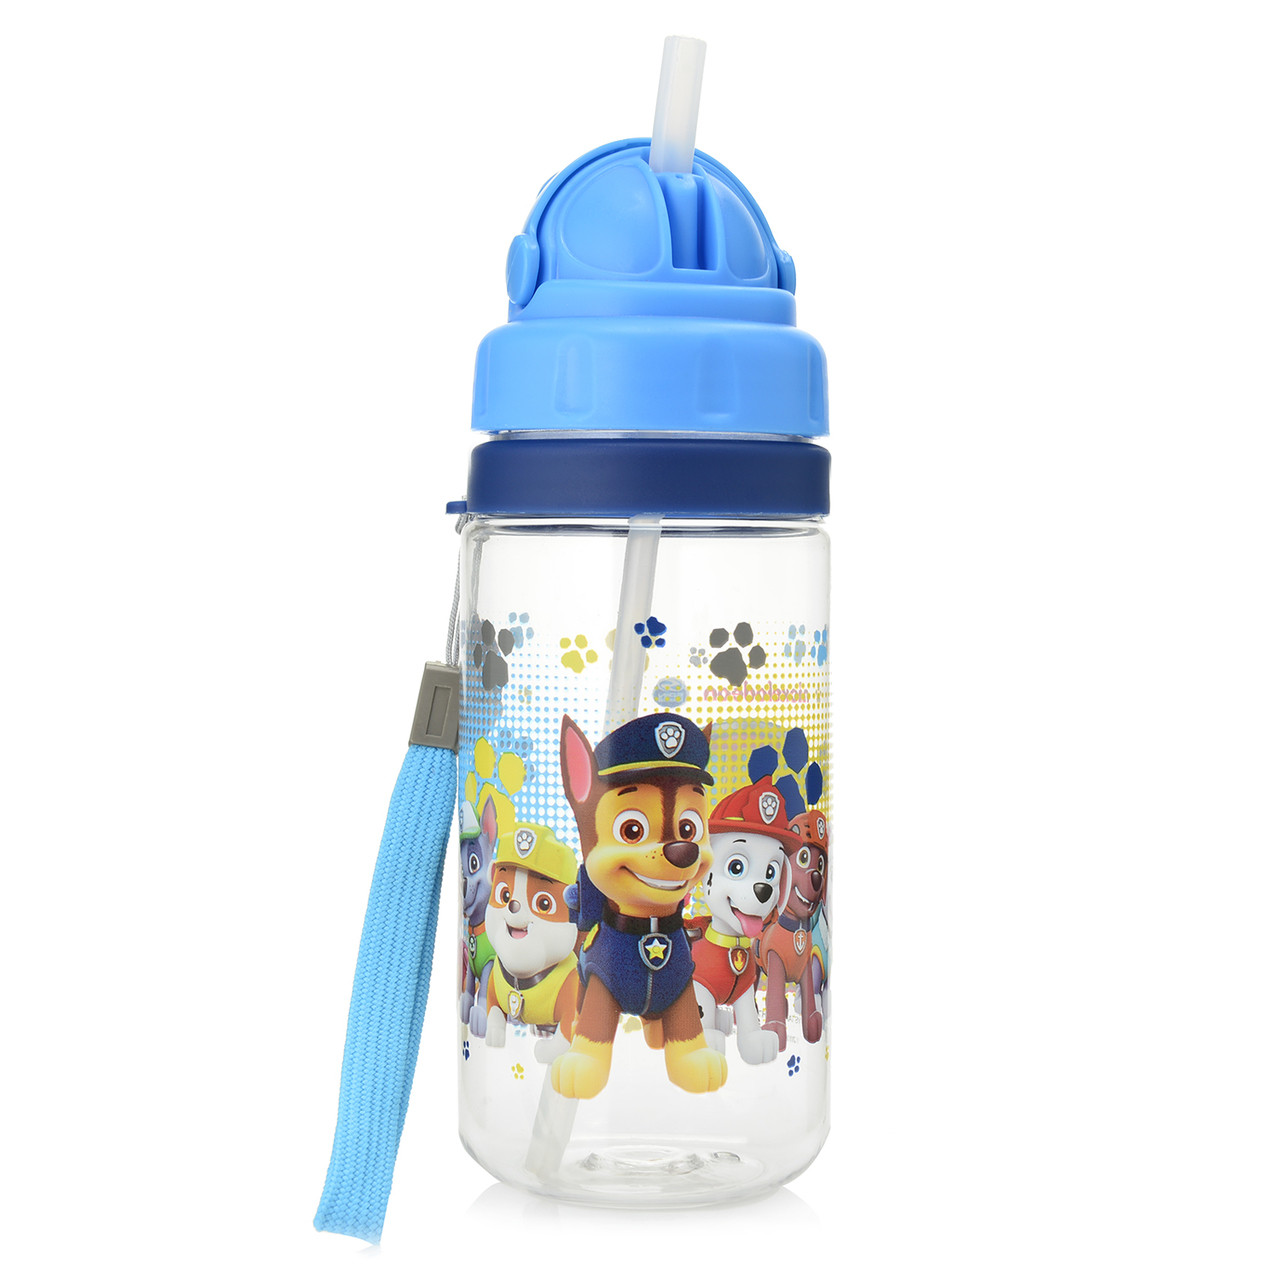 038cd9682e PAW Patrol Live! 17oz Bottle with Pop up Straw and Strap